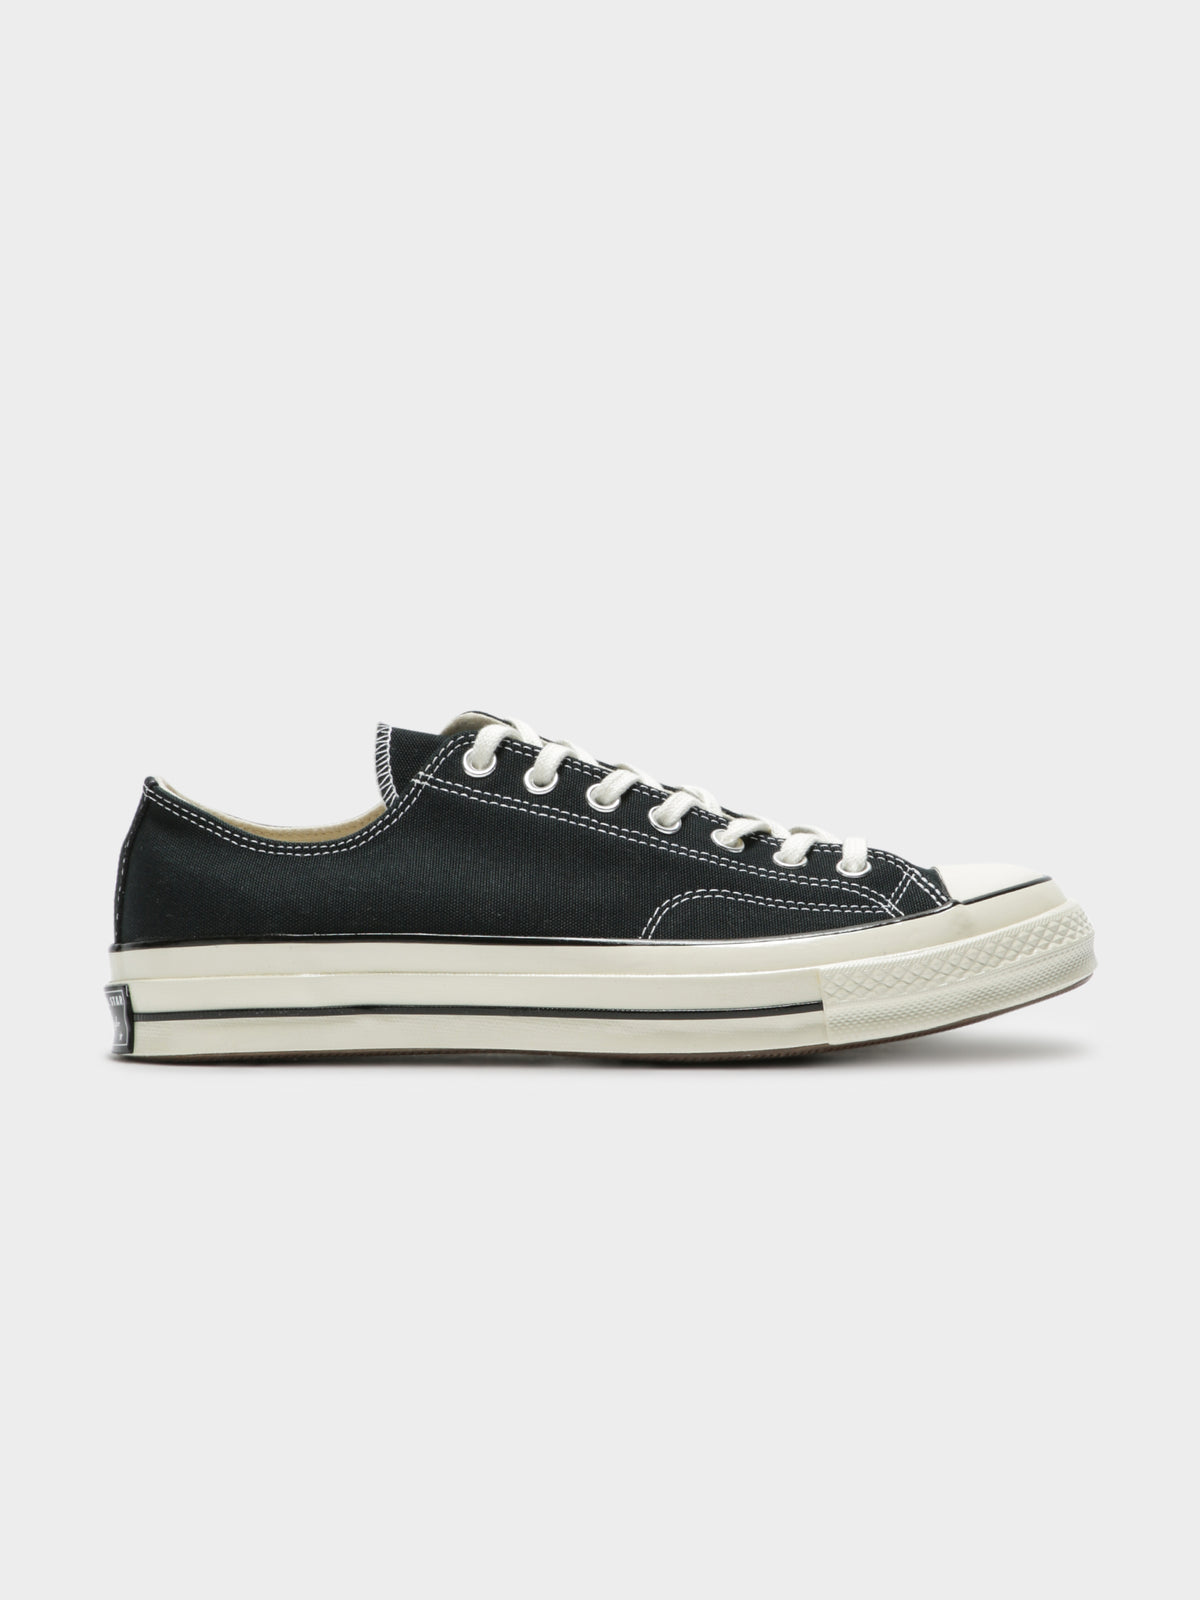 Unisex Chuck Taylor All Star 70 Low Top Sneakers in Black